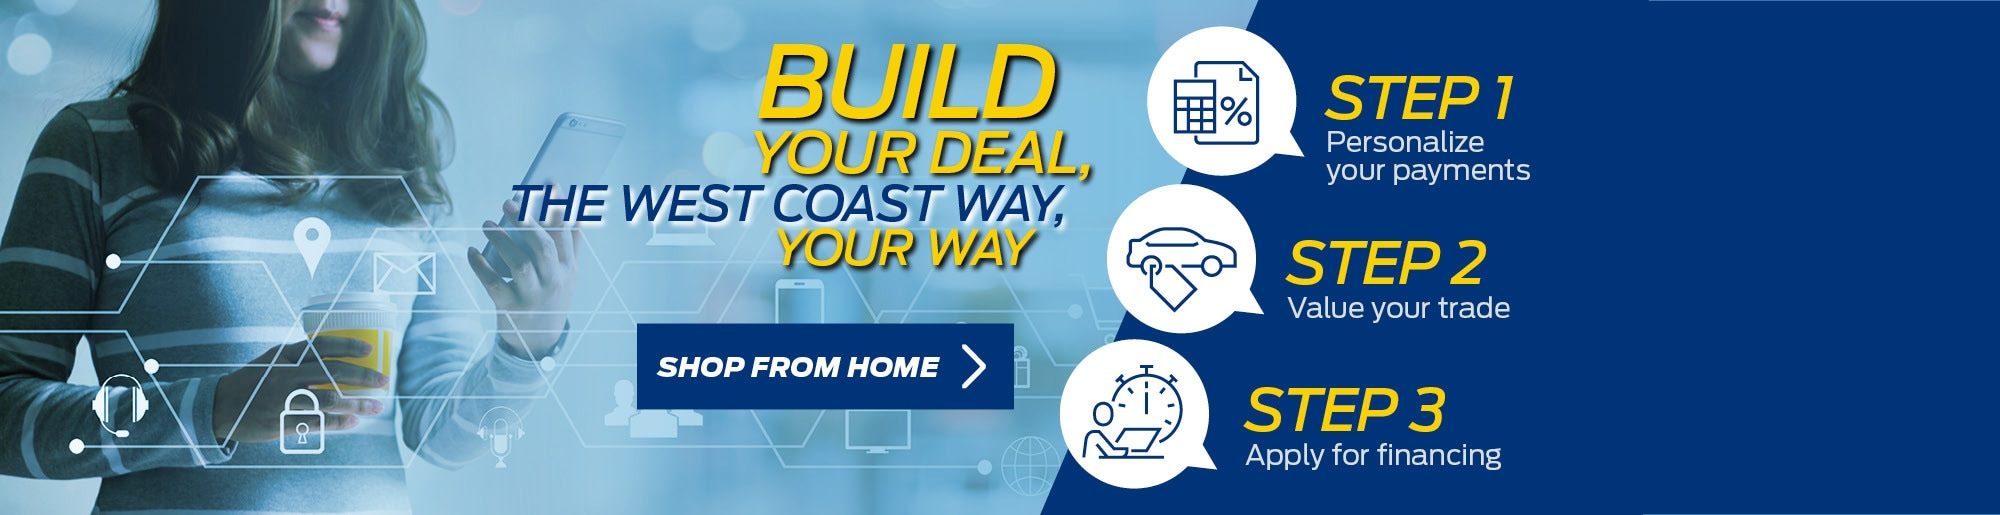 Build your deal banner